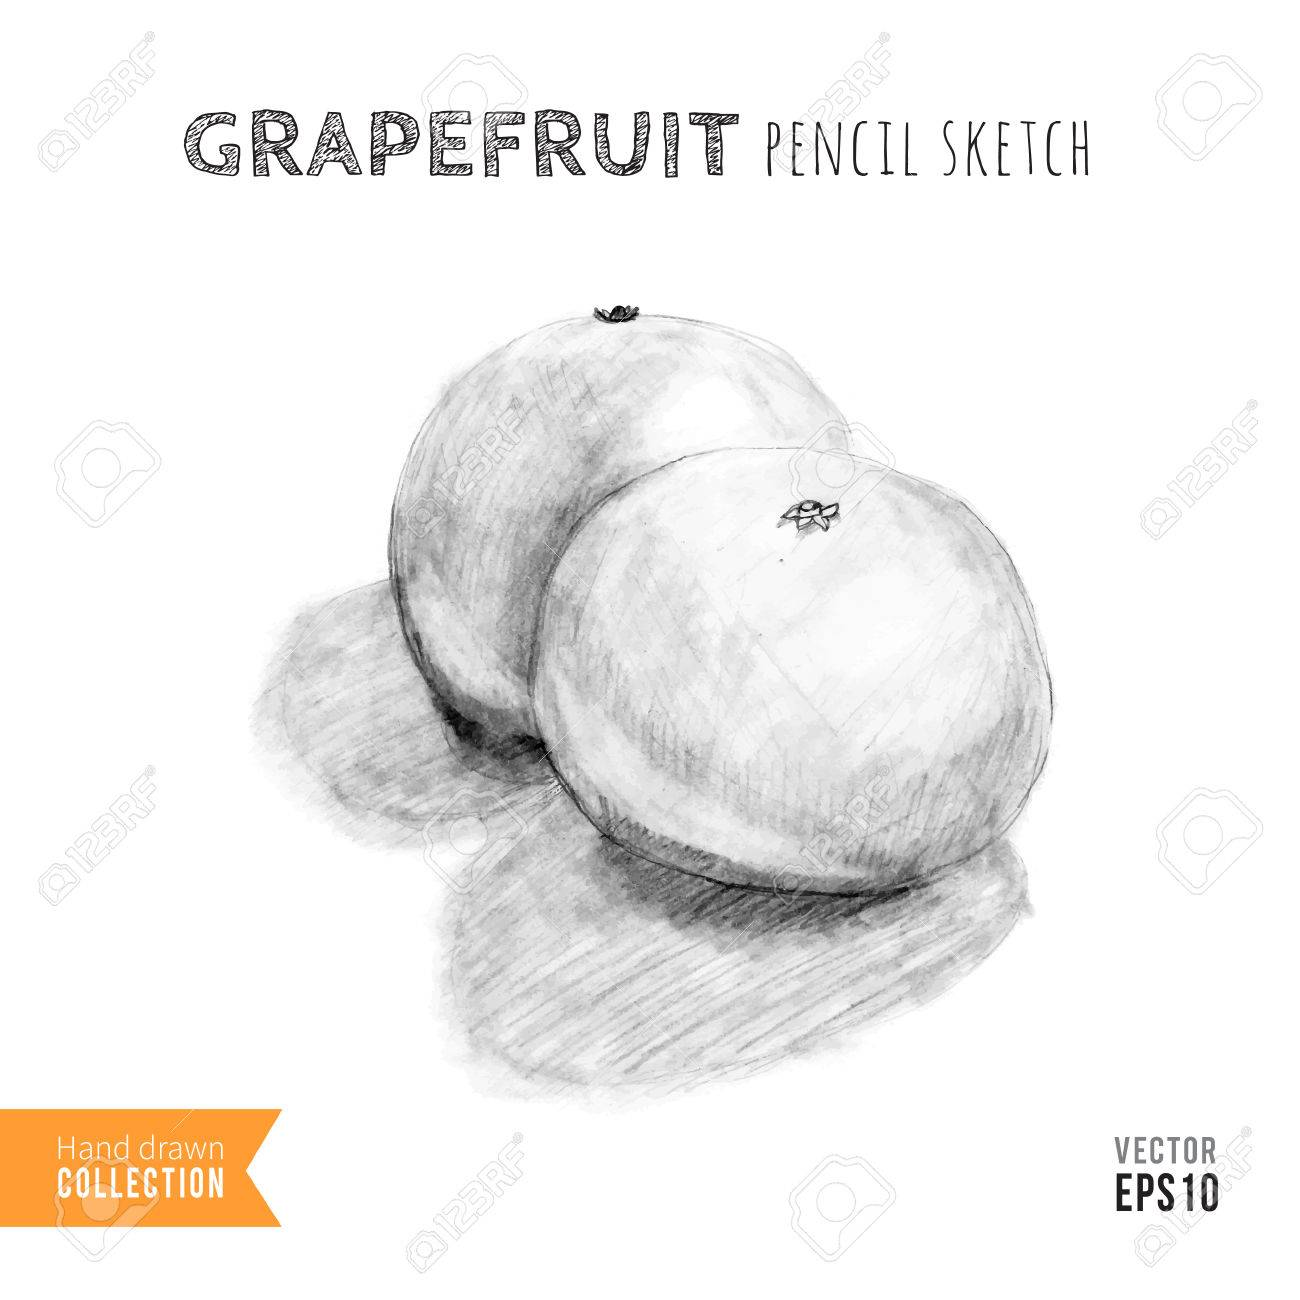 Two grapefruits hand drawn pencil sketch training drawing vector illustration stock vector